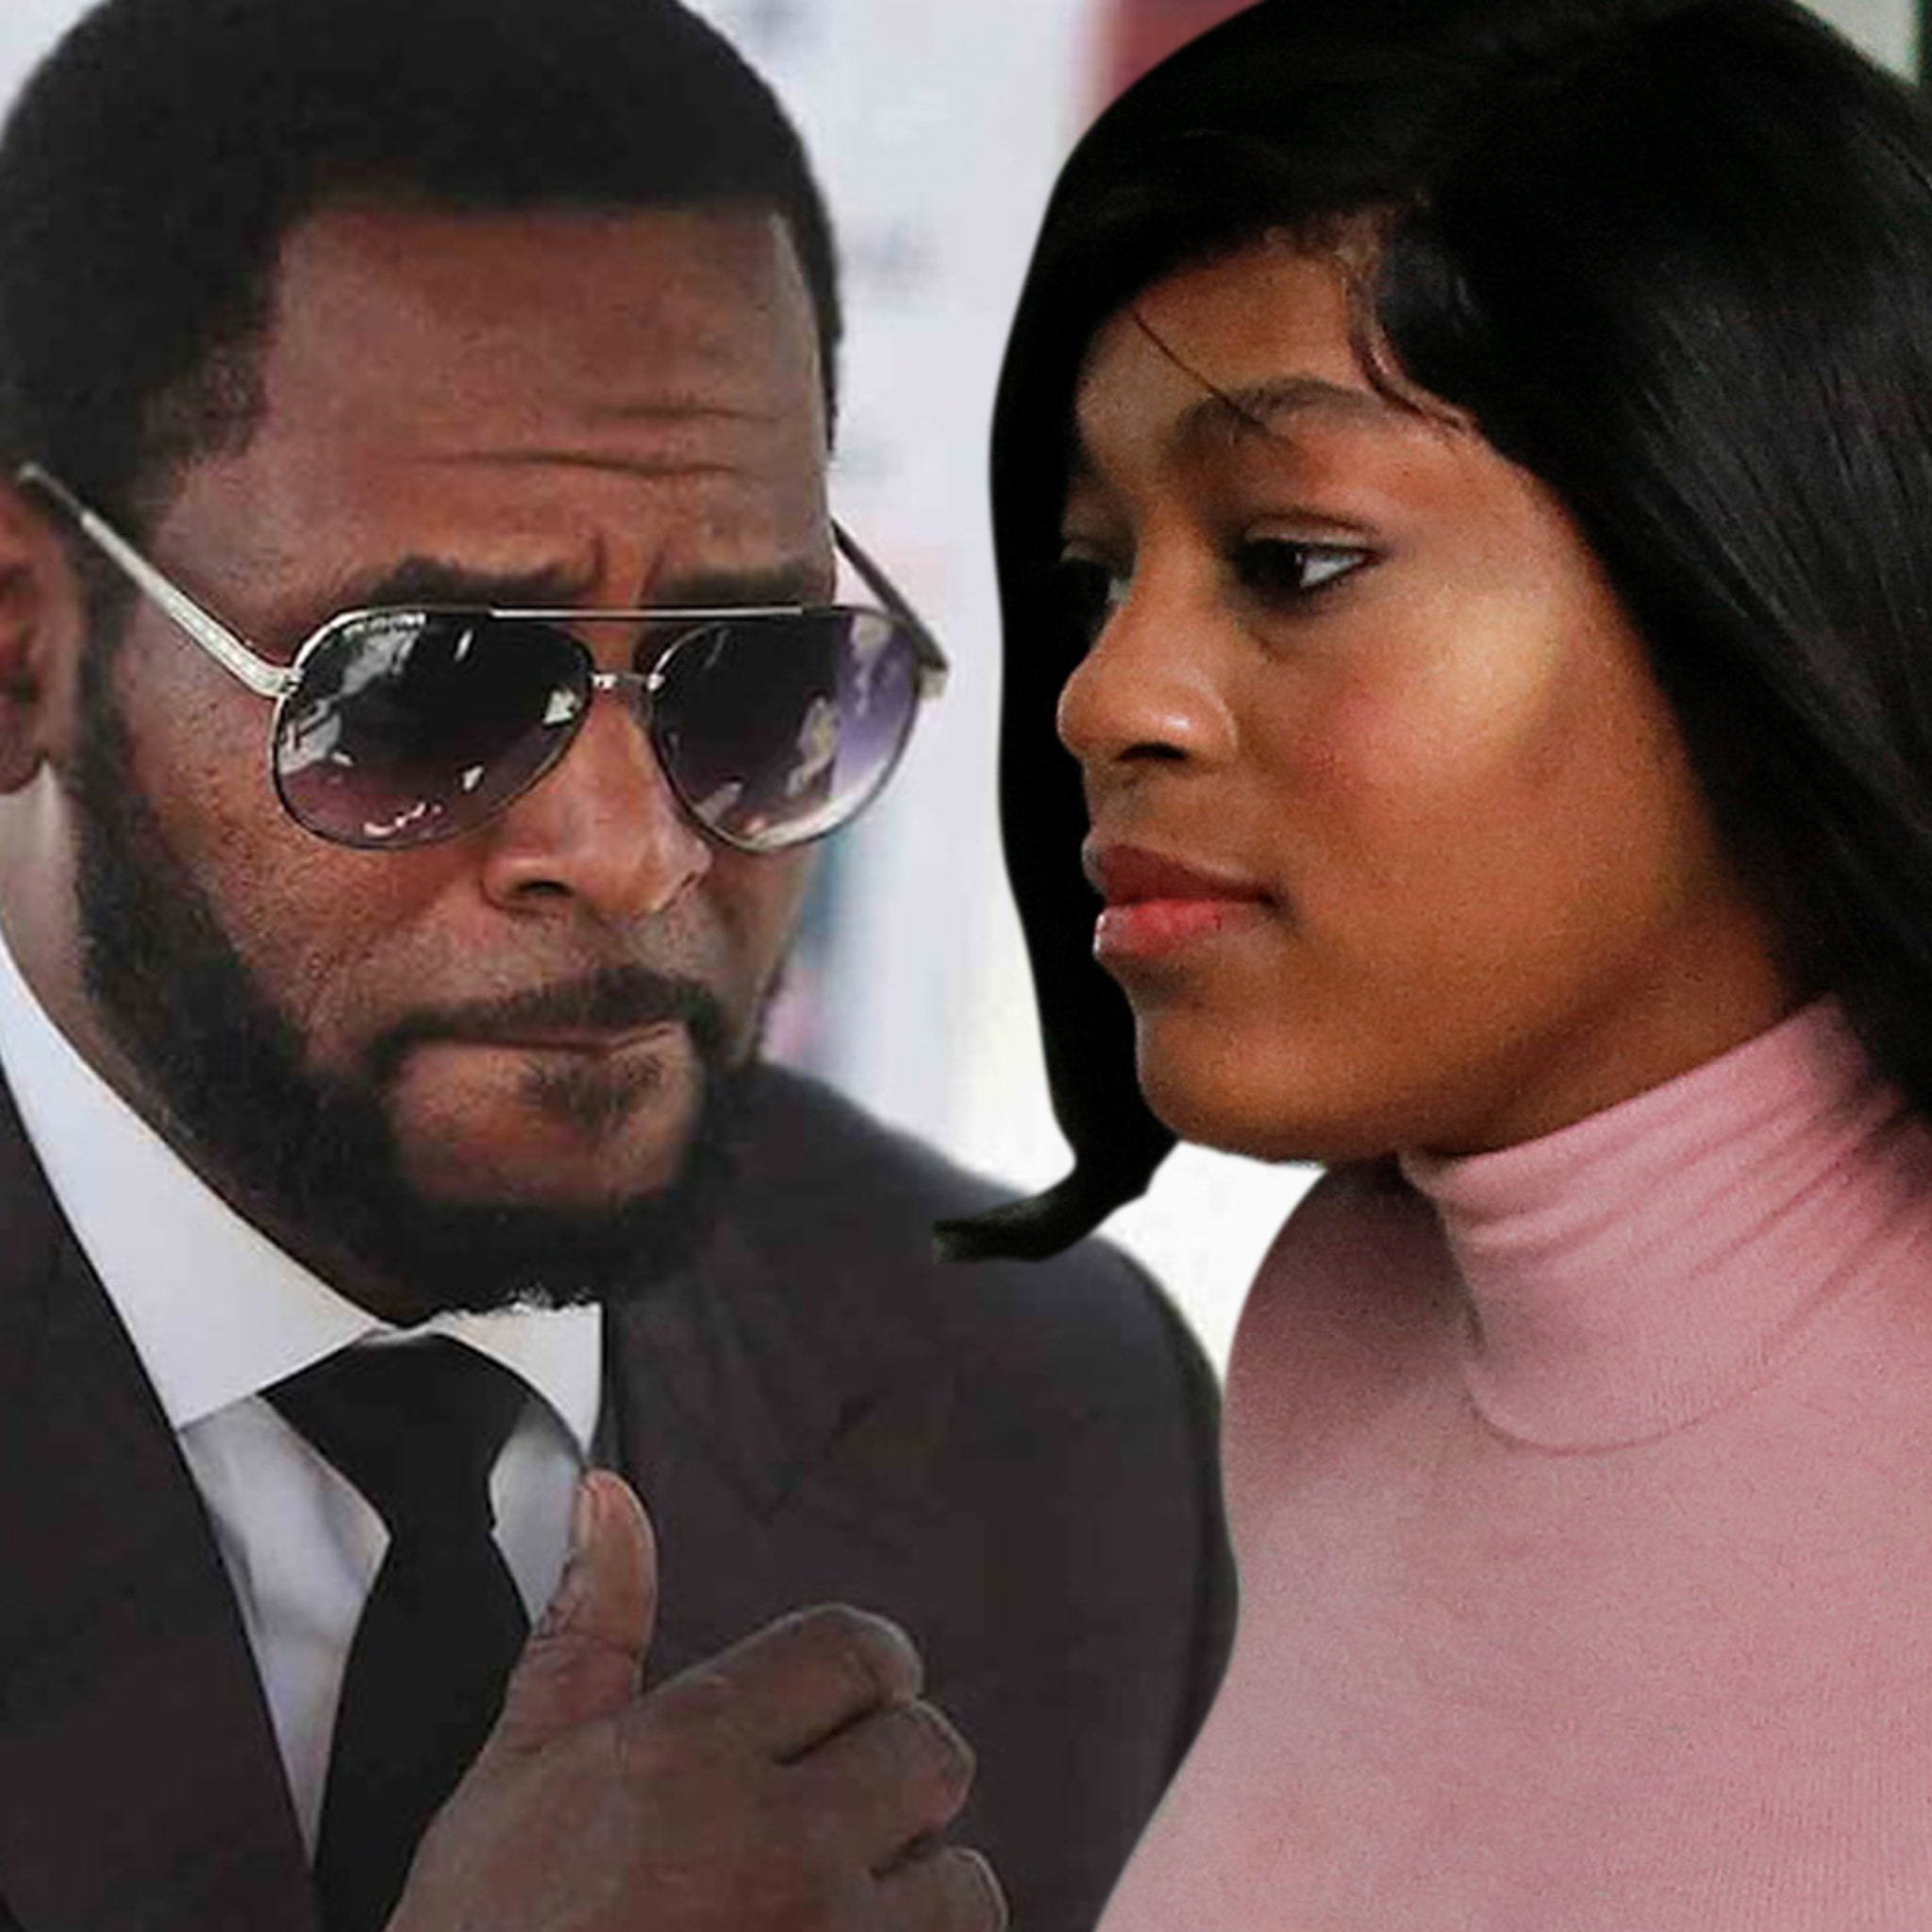 R. Kelly's GF Azriel Clary Moves Out of Trump Tower, Done with Drama